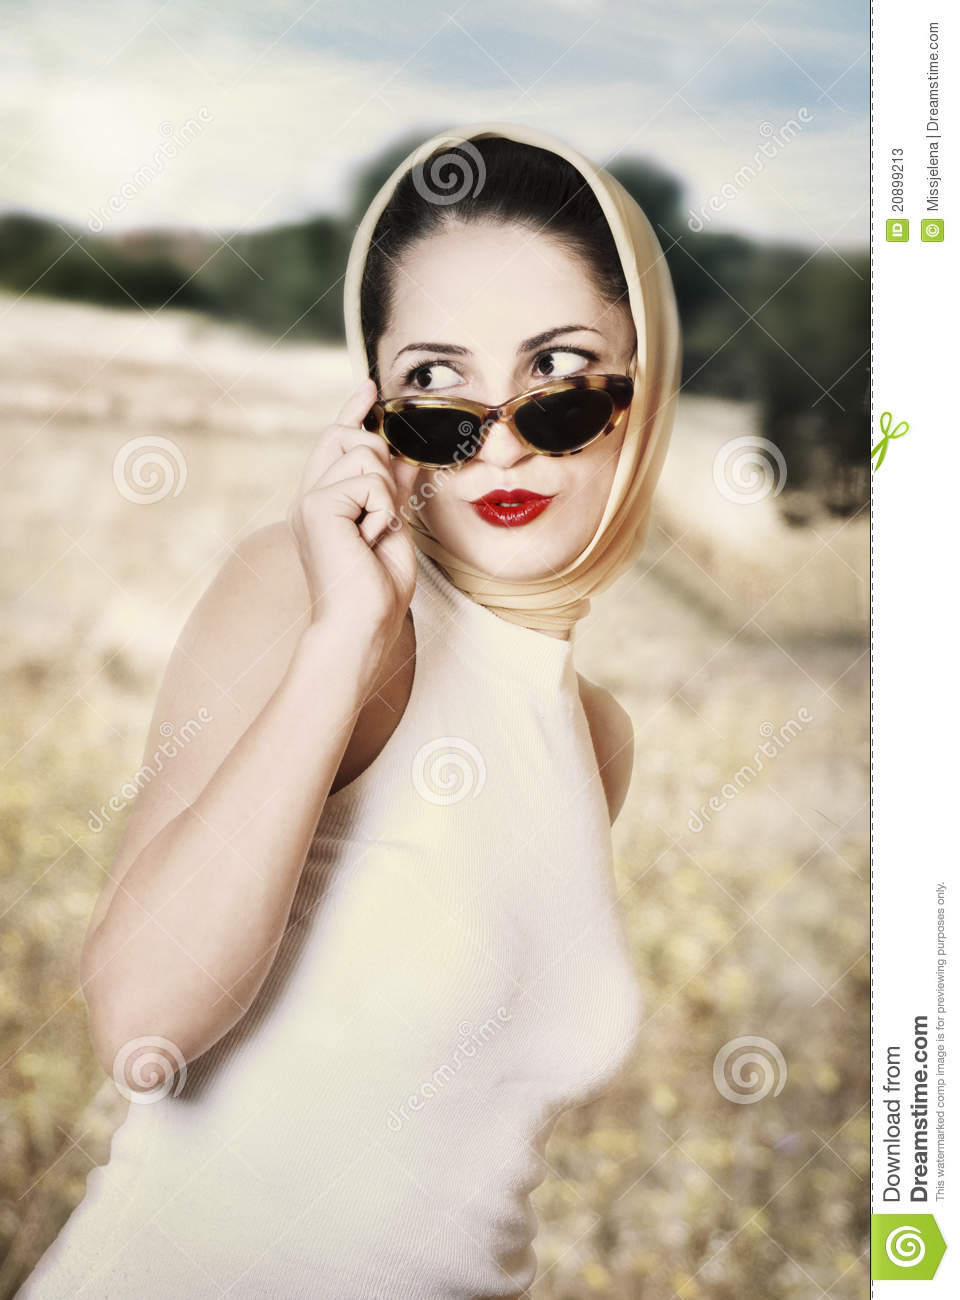 Retro Woman Stock Image. Image Of Film, Glamor, Glasses